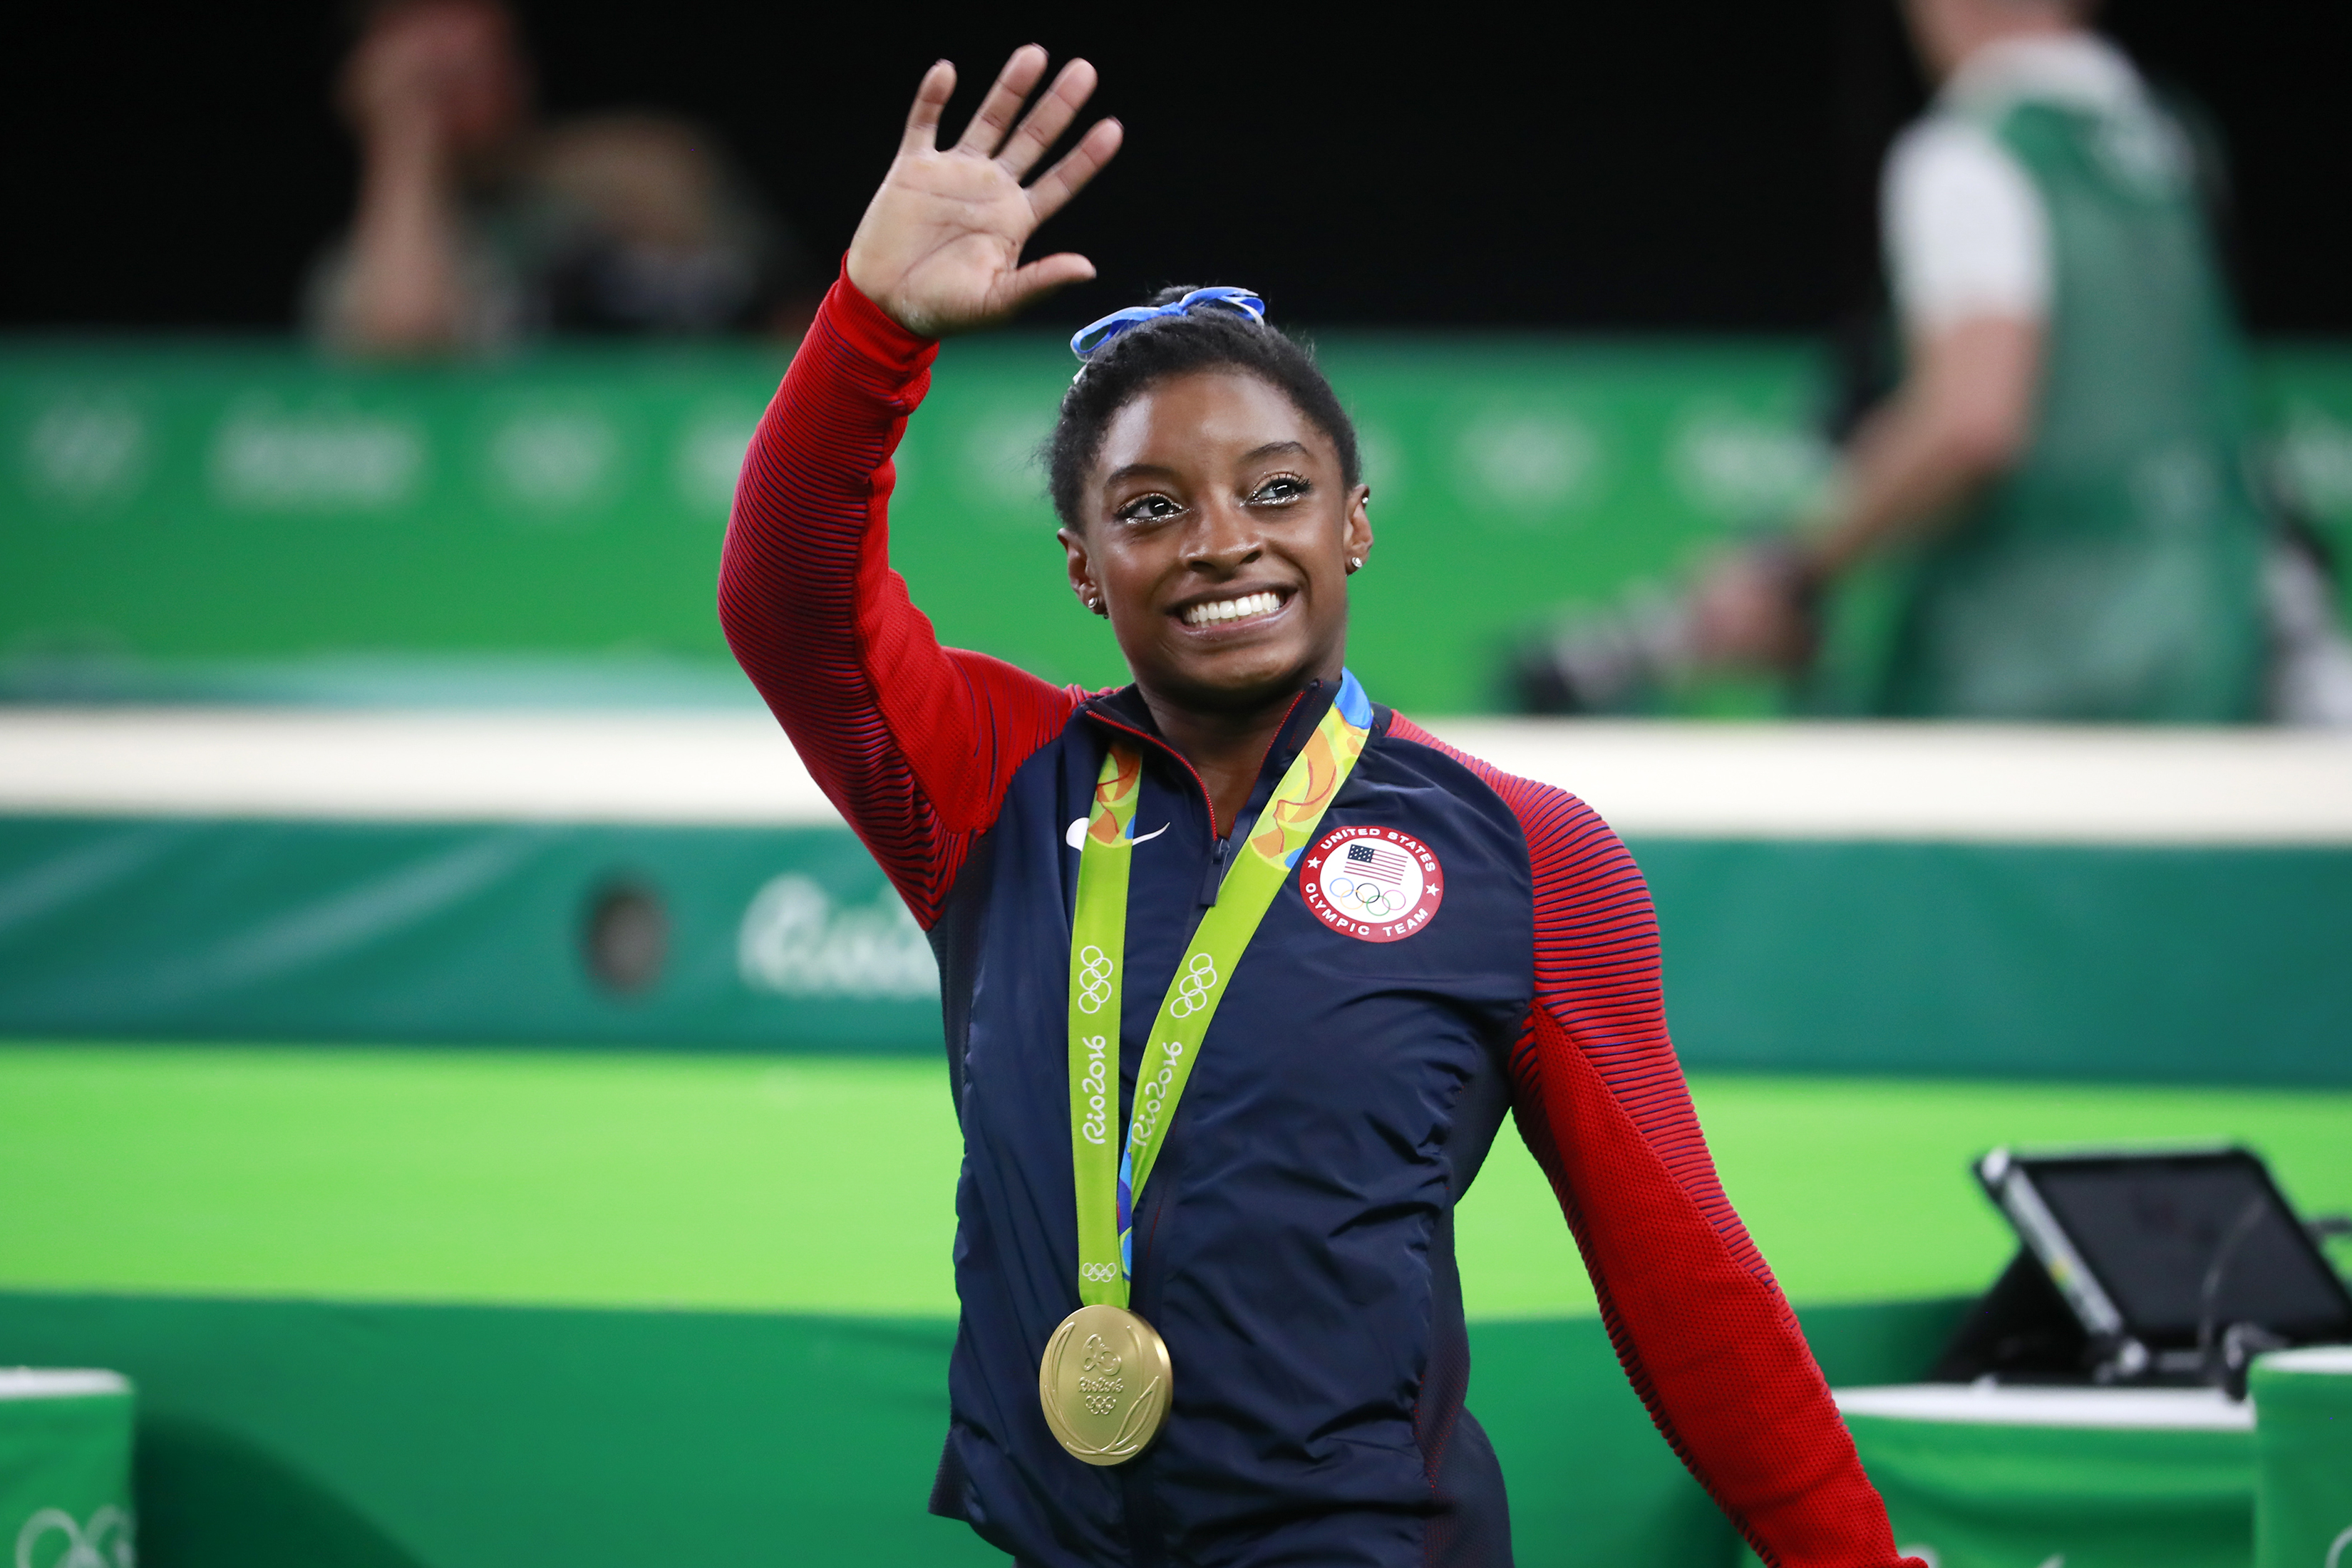 In this file photo, Simone Biles of the US, waves at the crowd at the Olympic Arena during the 2016 Summer Olympics, where she won four gold medals, in Rio de Janeiro, August 11, 2016.